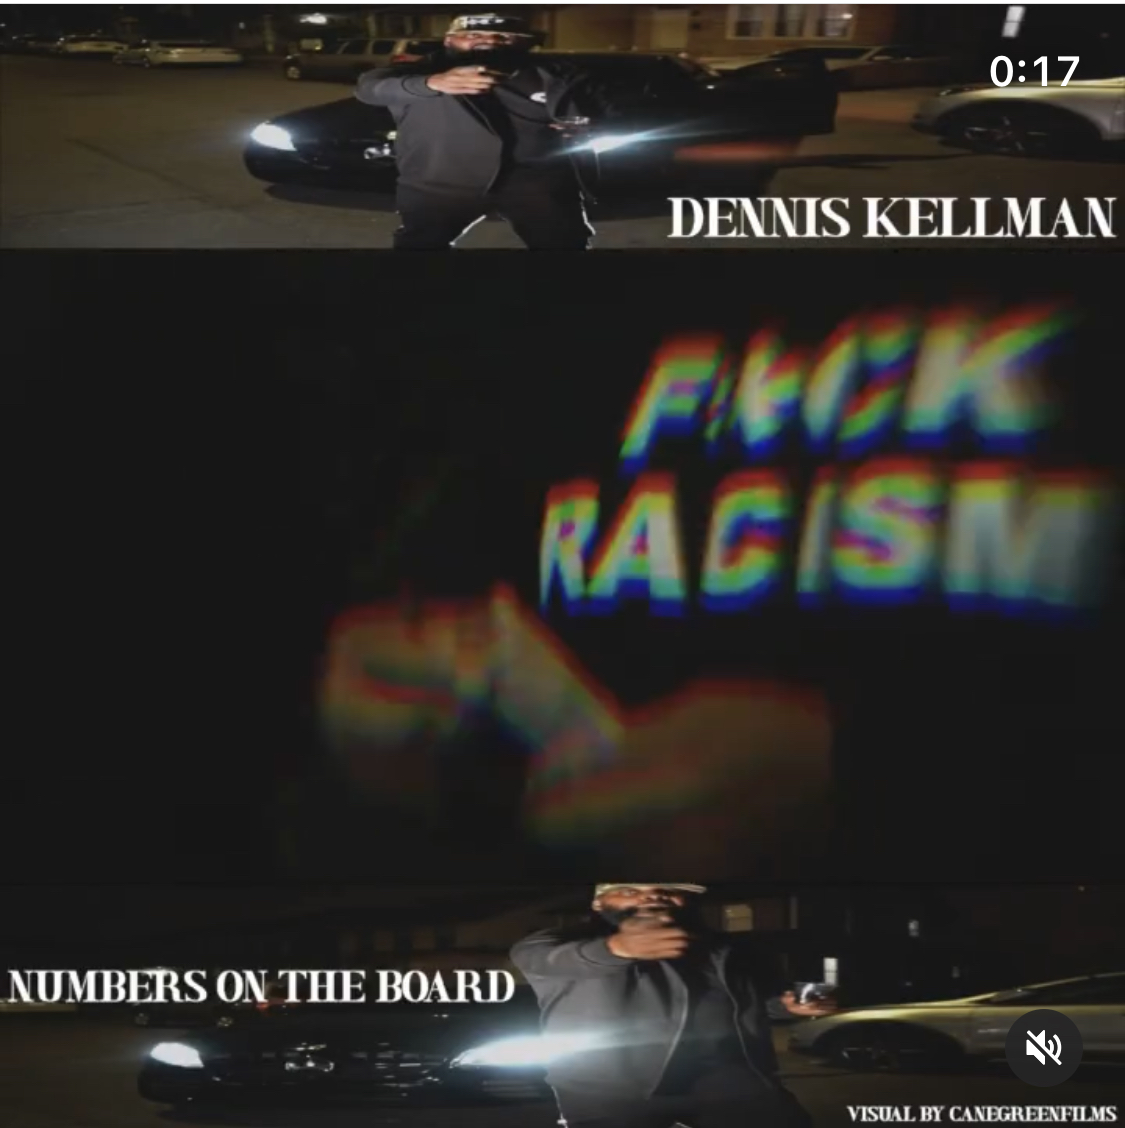 """Dennis Kellman """"The Vaccine of the Rap Scene"""" Freestyle (Numbers on the Board)"""